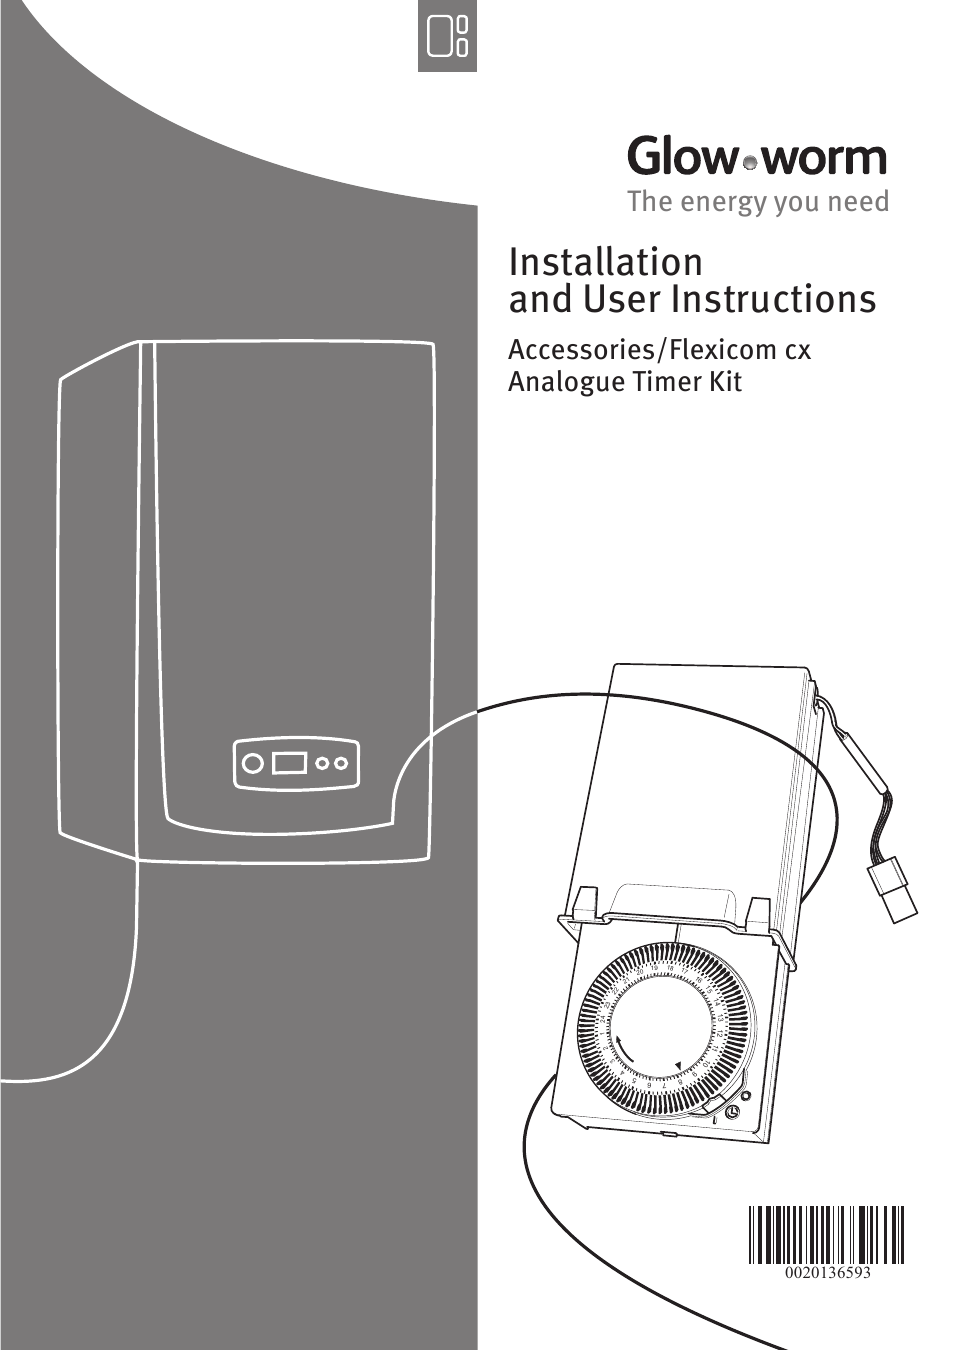 Glow-worm Flexicom cx Analogue Timer Kit User Manual | 4 pages